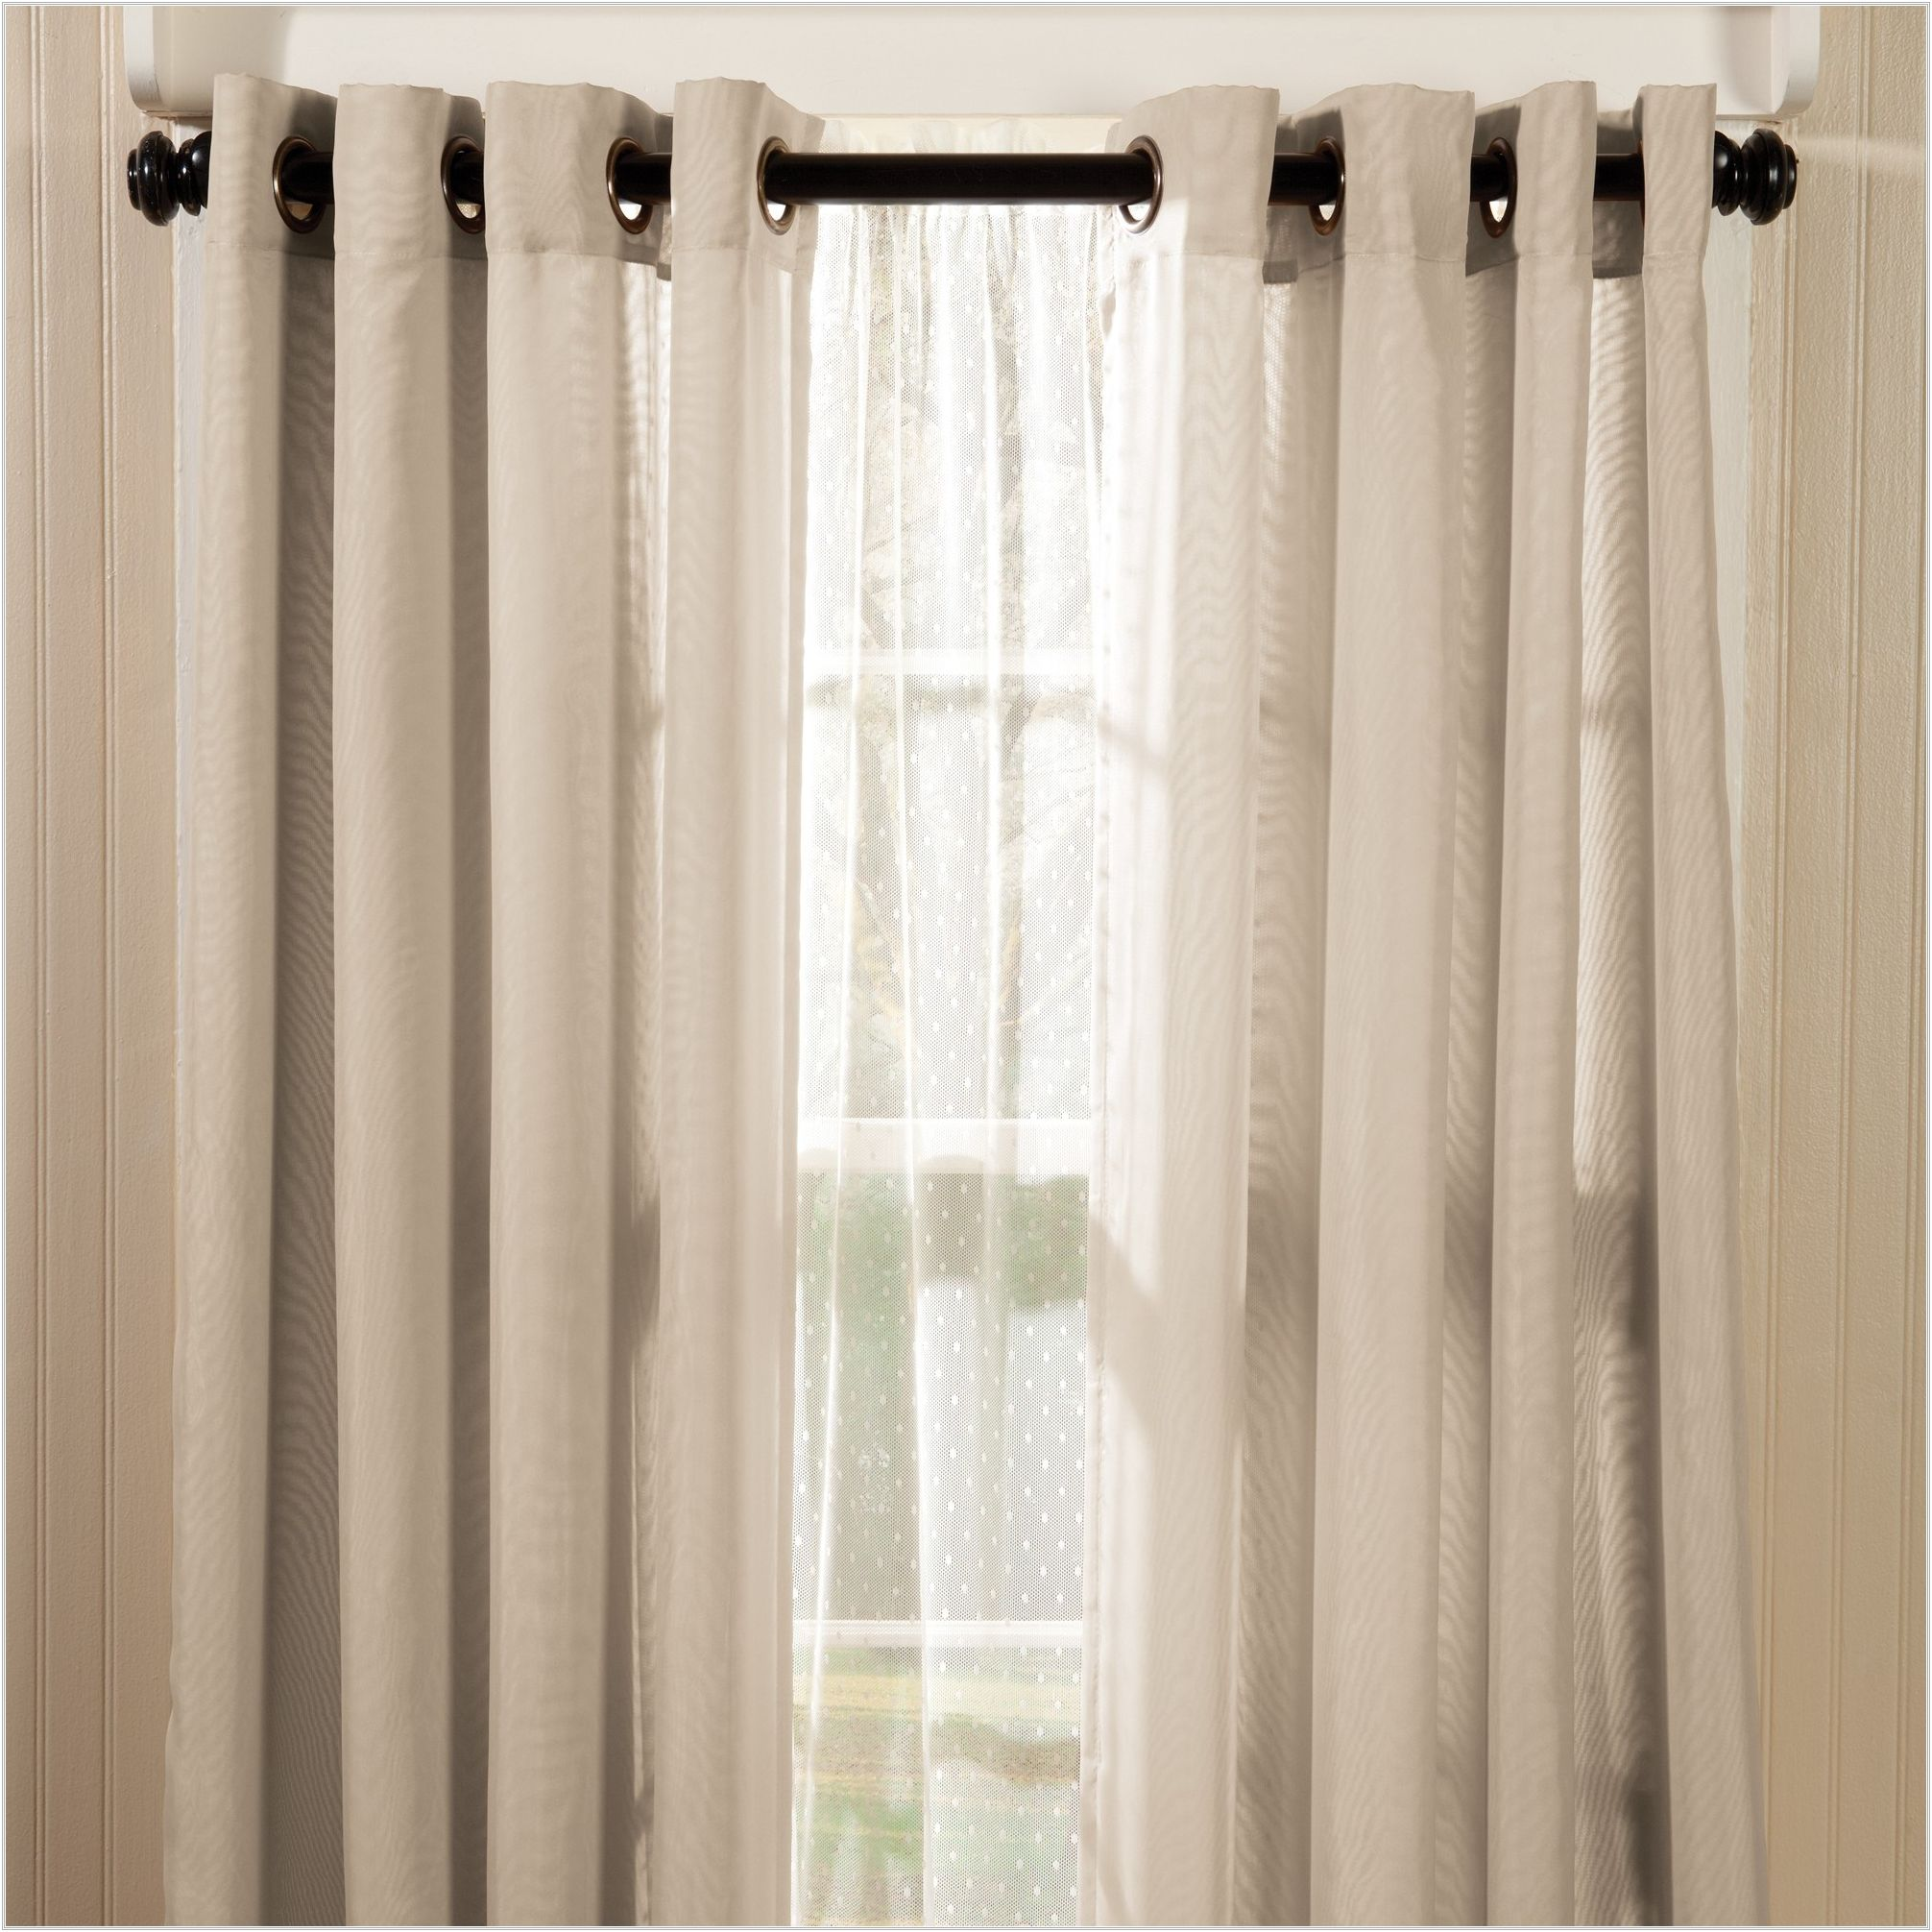 Penneys Sheer Curtains In 2020 Curtains Beige Curtains Grommet